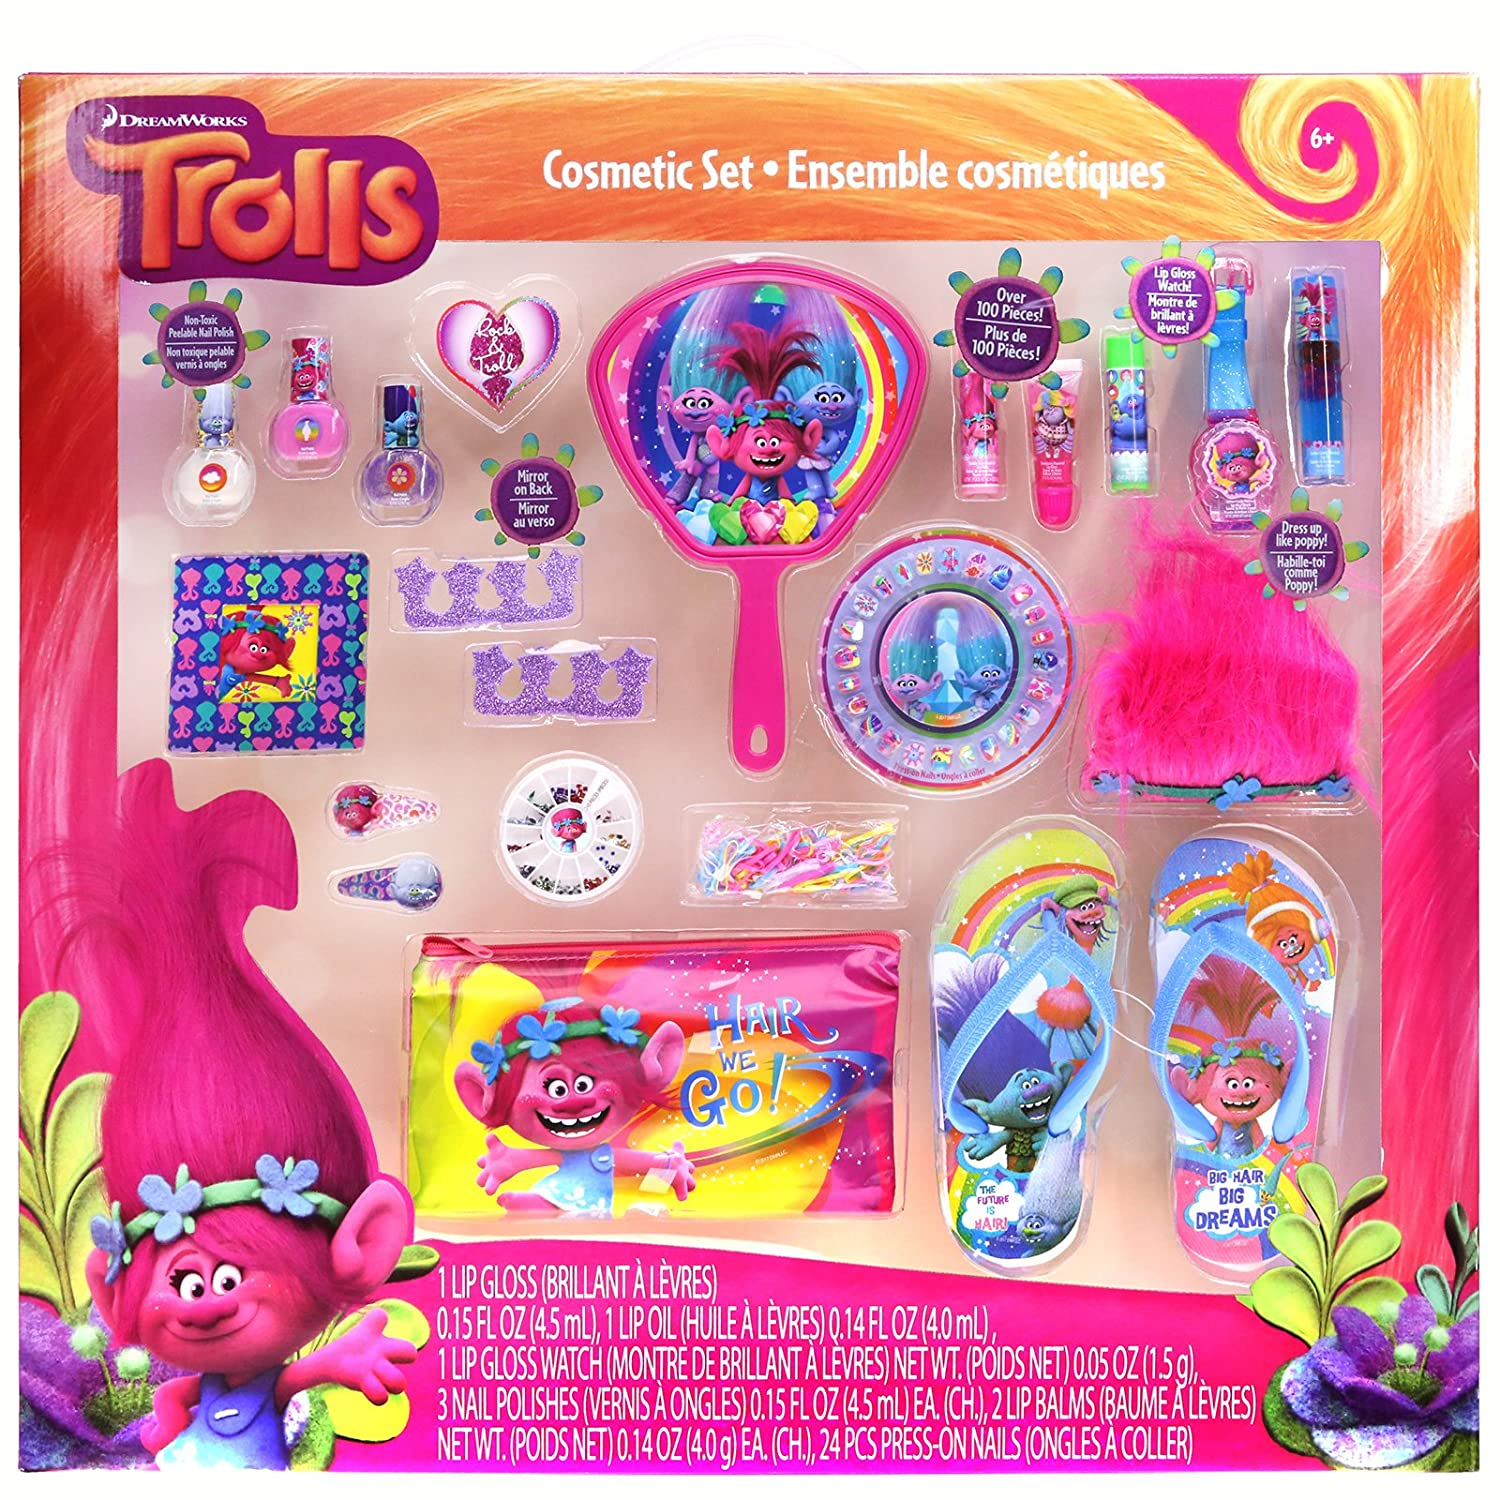 Townley Girl Dreamworks Trolls Cosmetic Set with Nail Polish, Lip Gloss, Press-On Nails, Sandals, Toe Separators, and More TownleyGirl